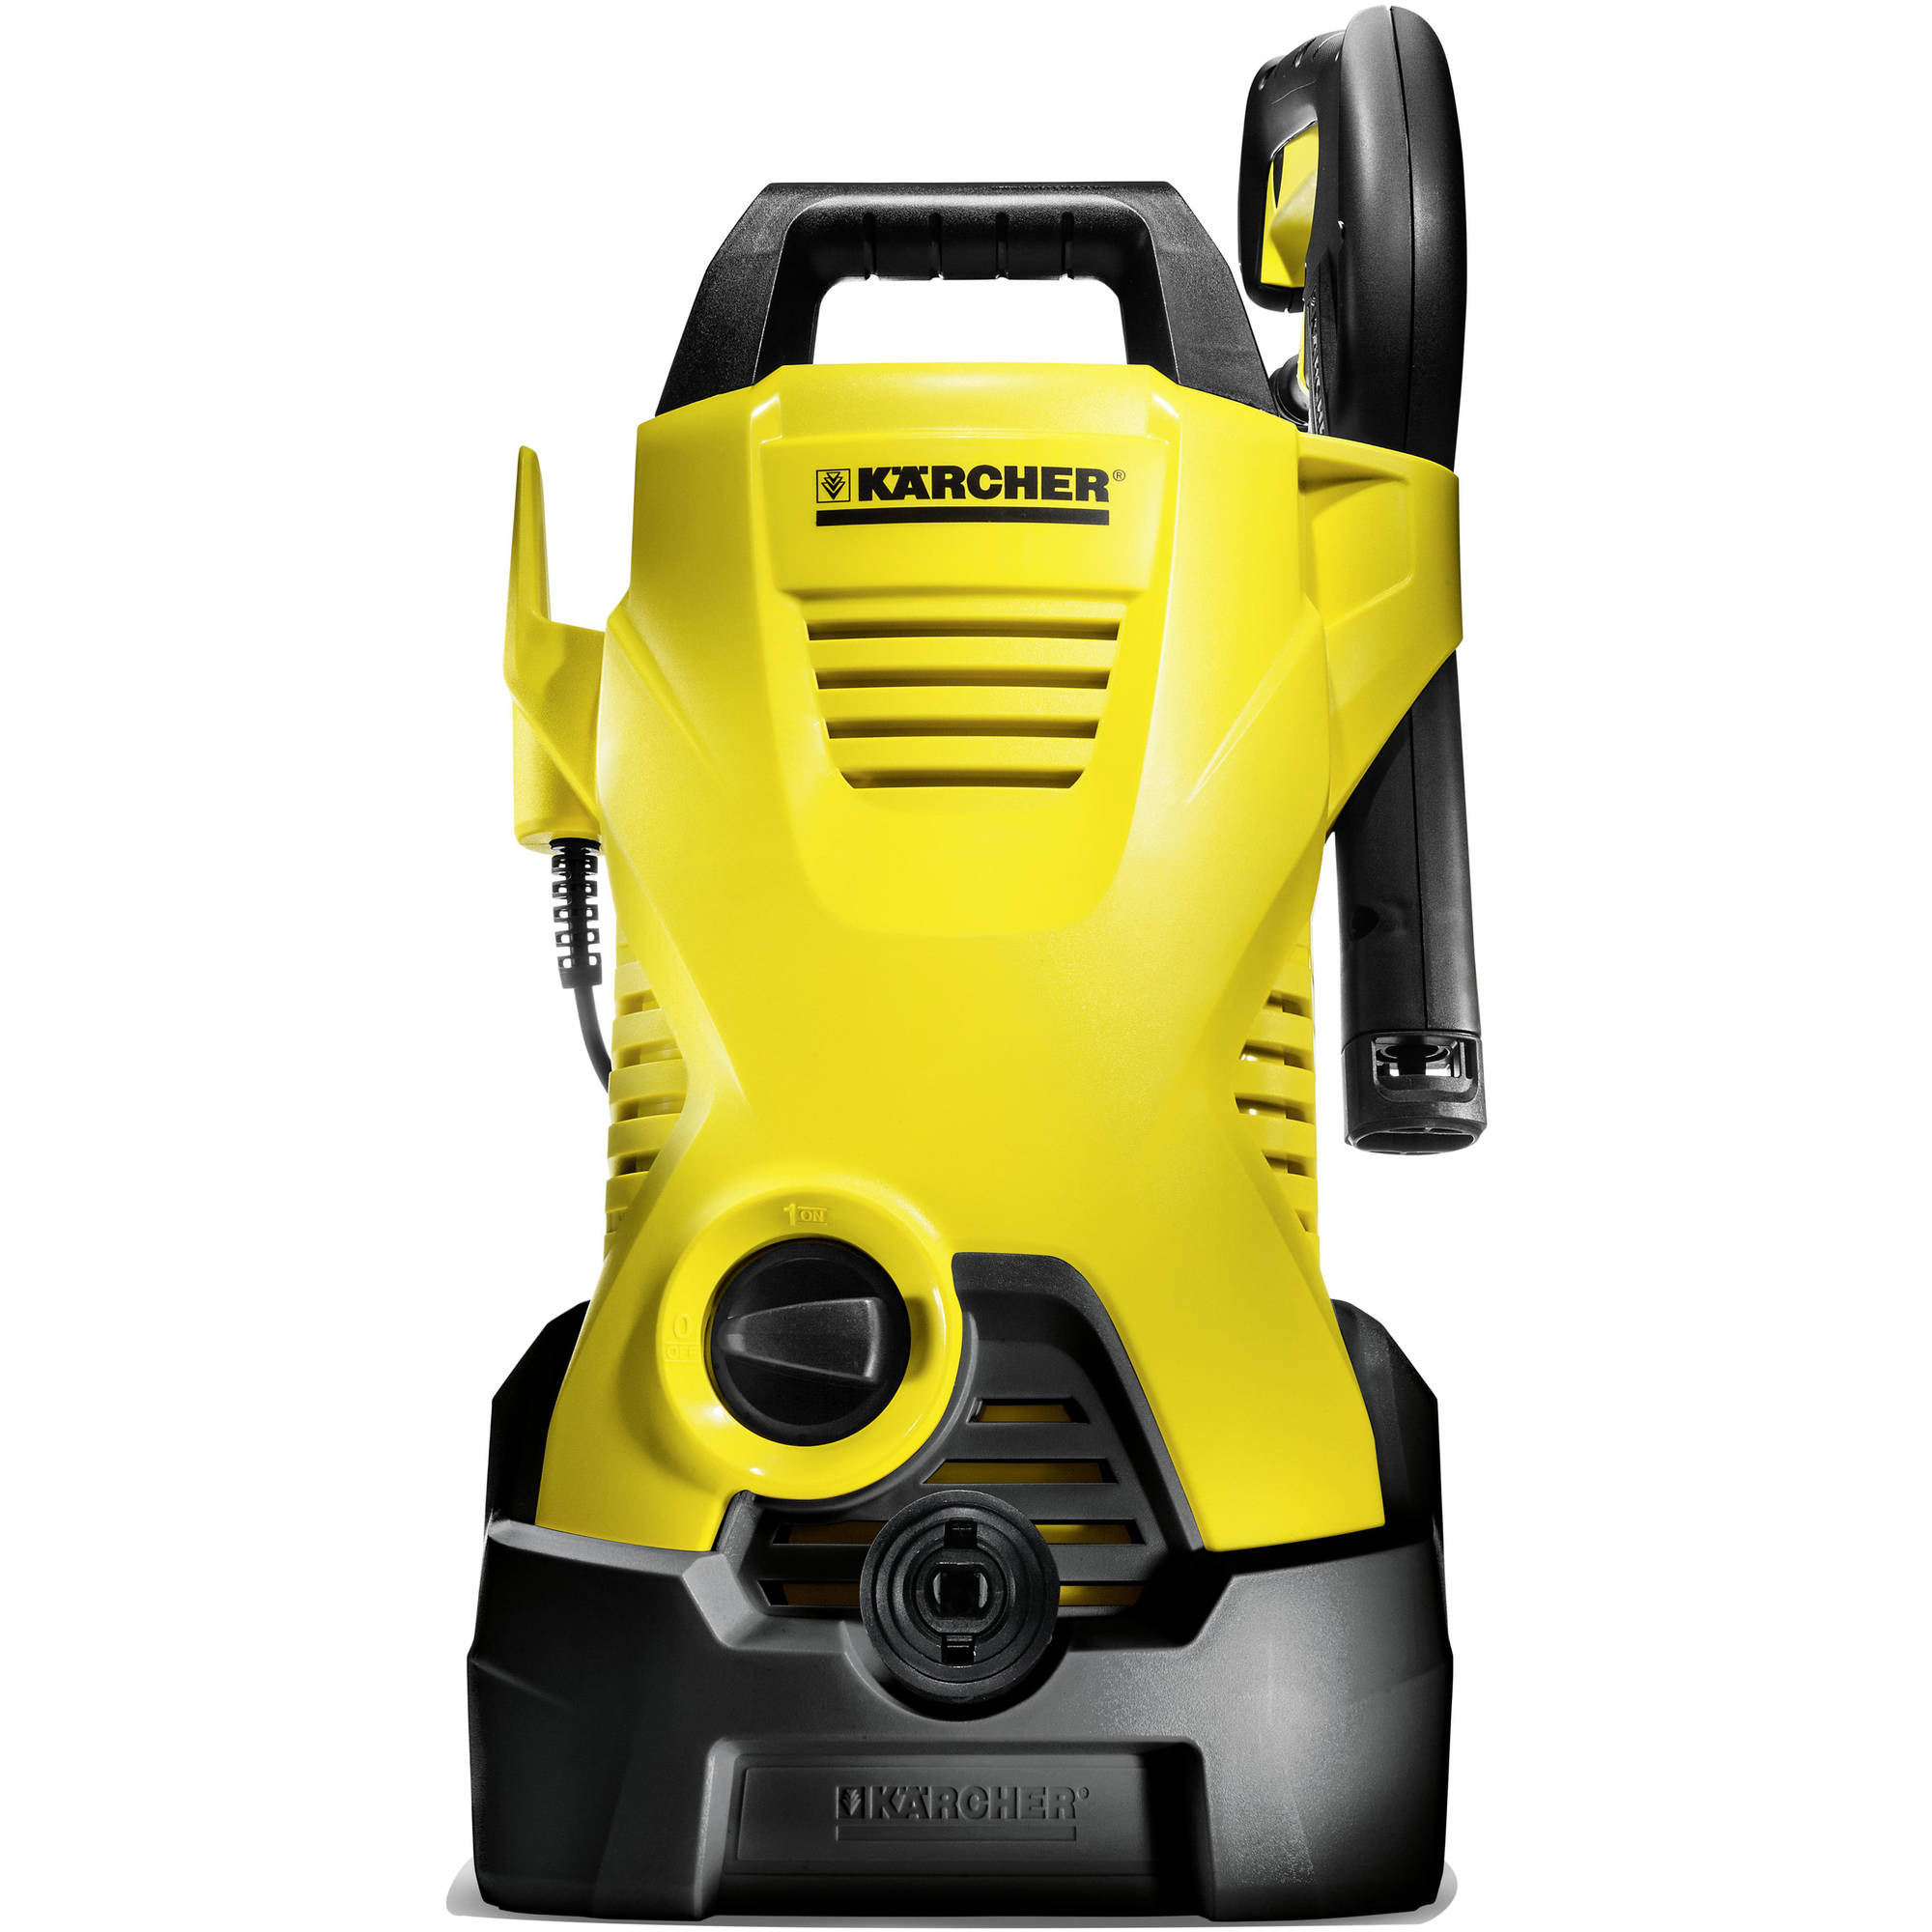 Karcher K2 Compact 1600 PSI Electric Pressure Washer